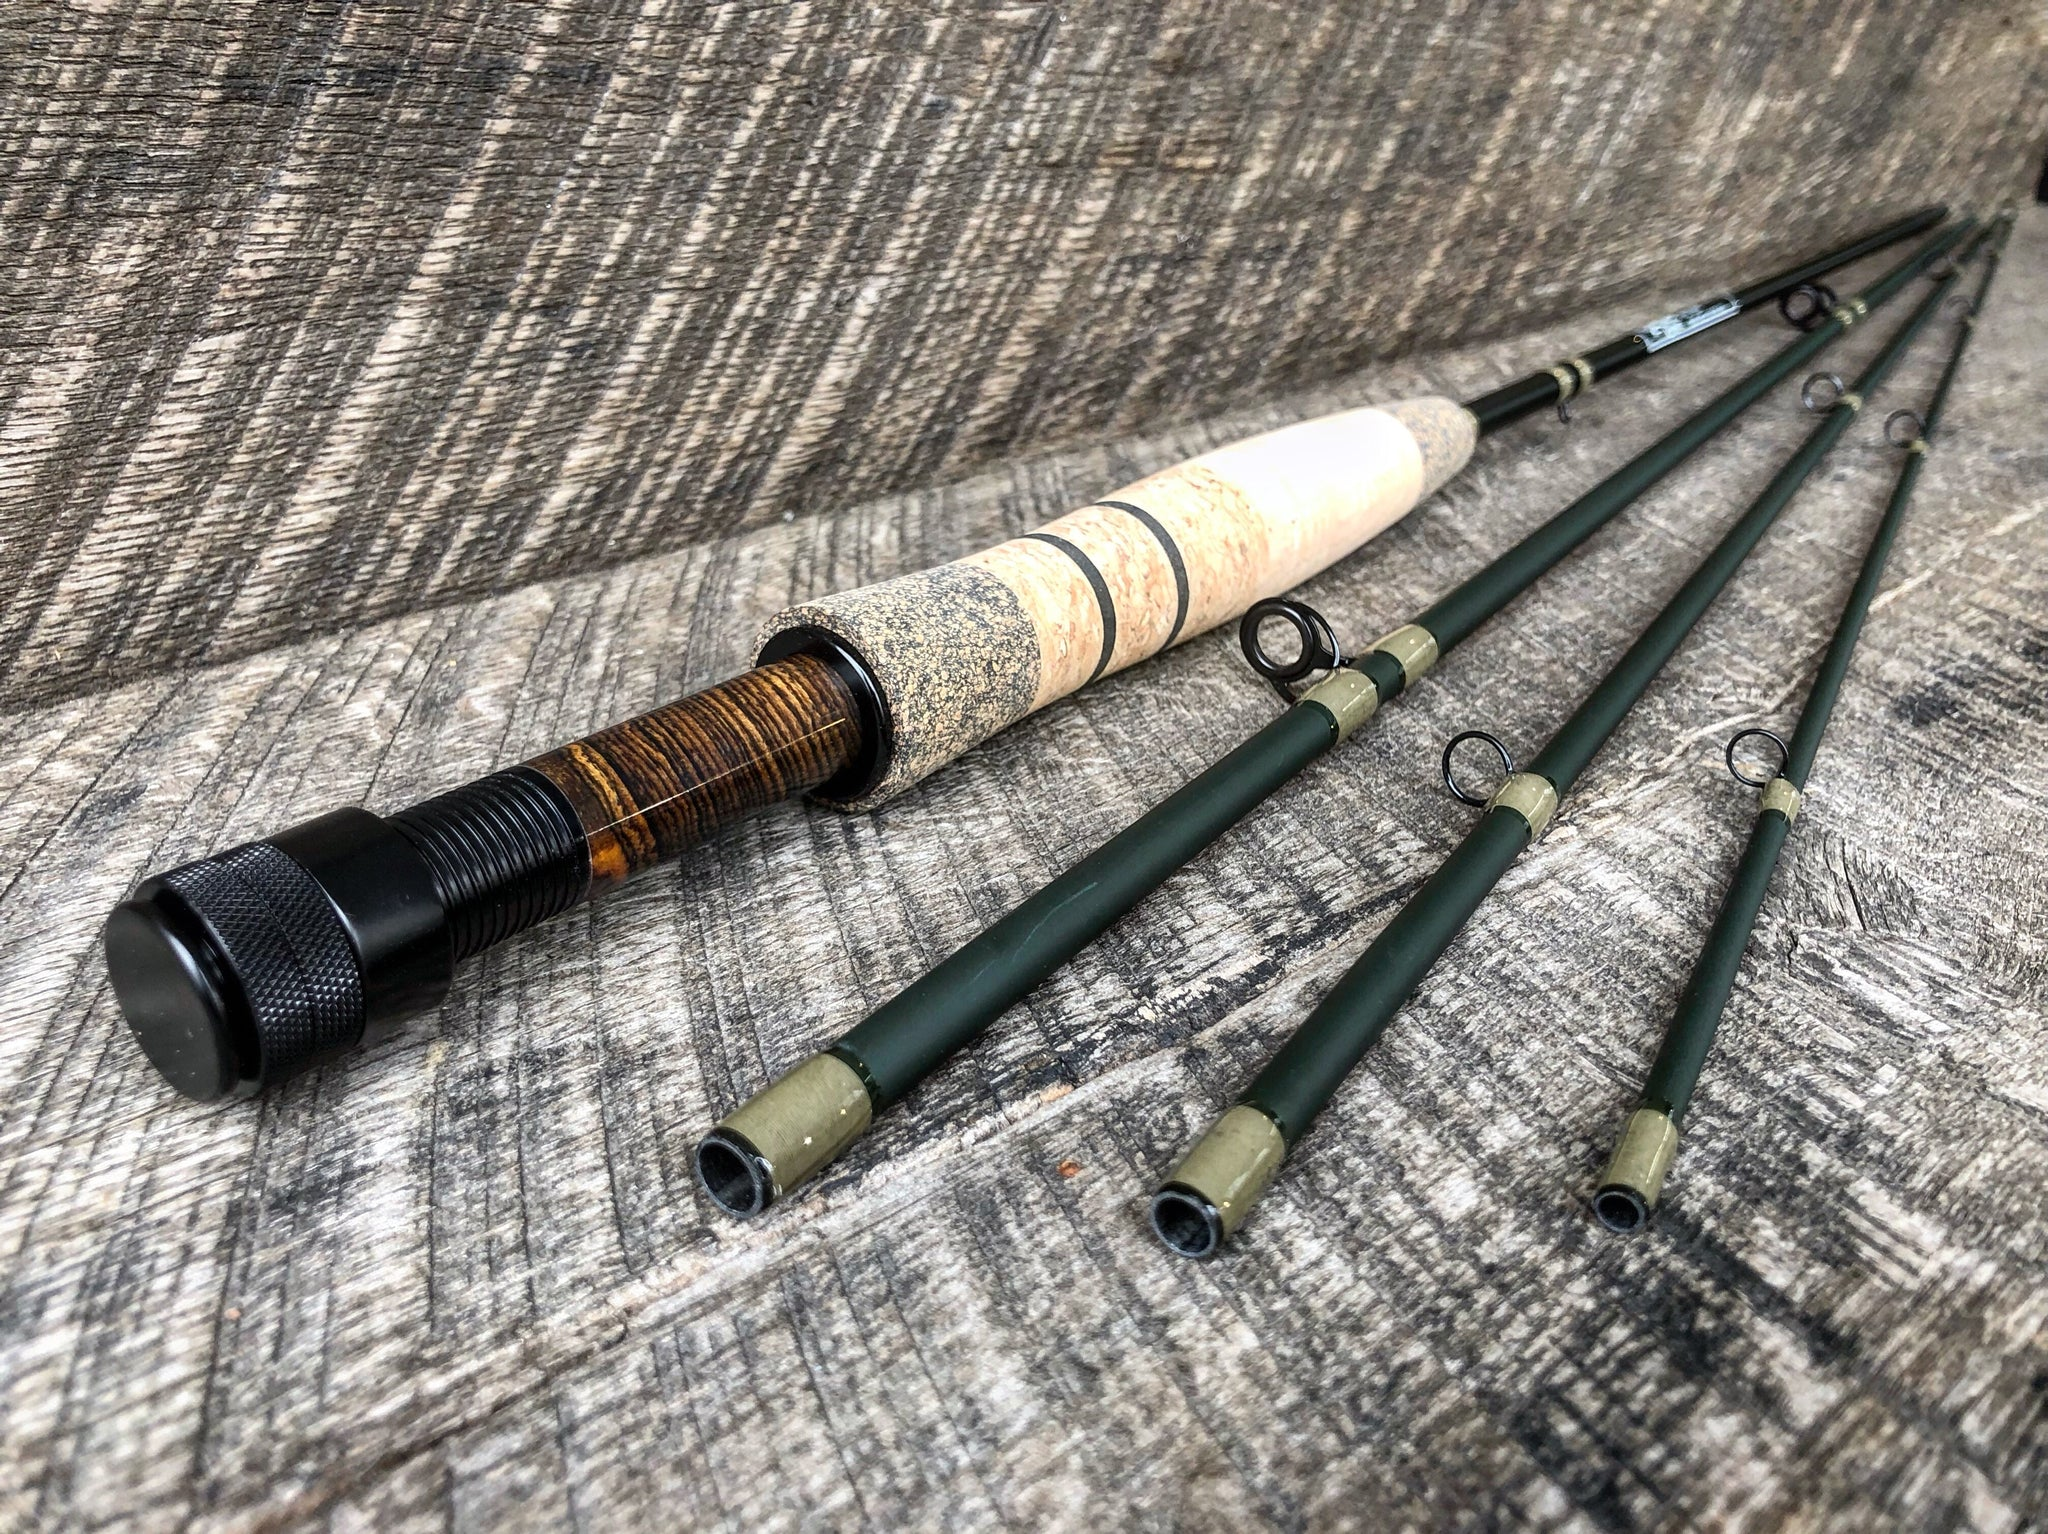 Midnight Special - 4wt - 9' - #1629 Cocobolo OD Green